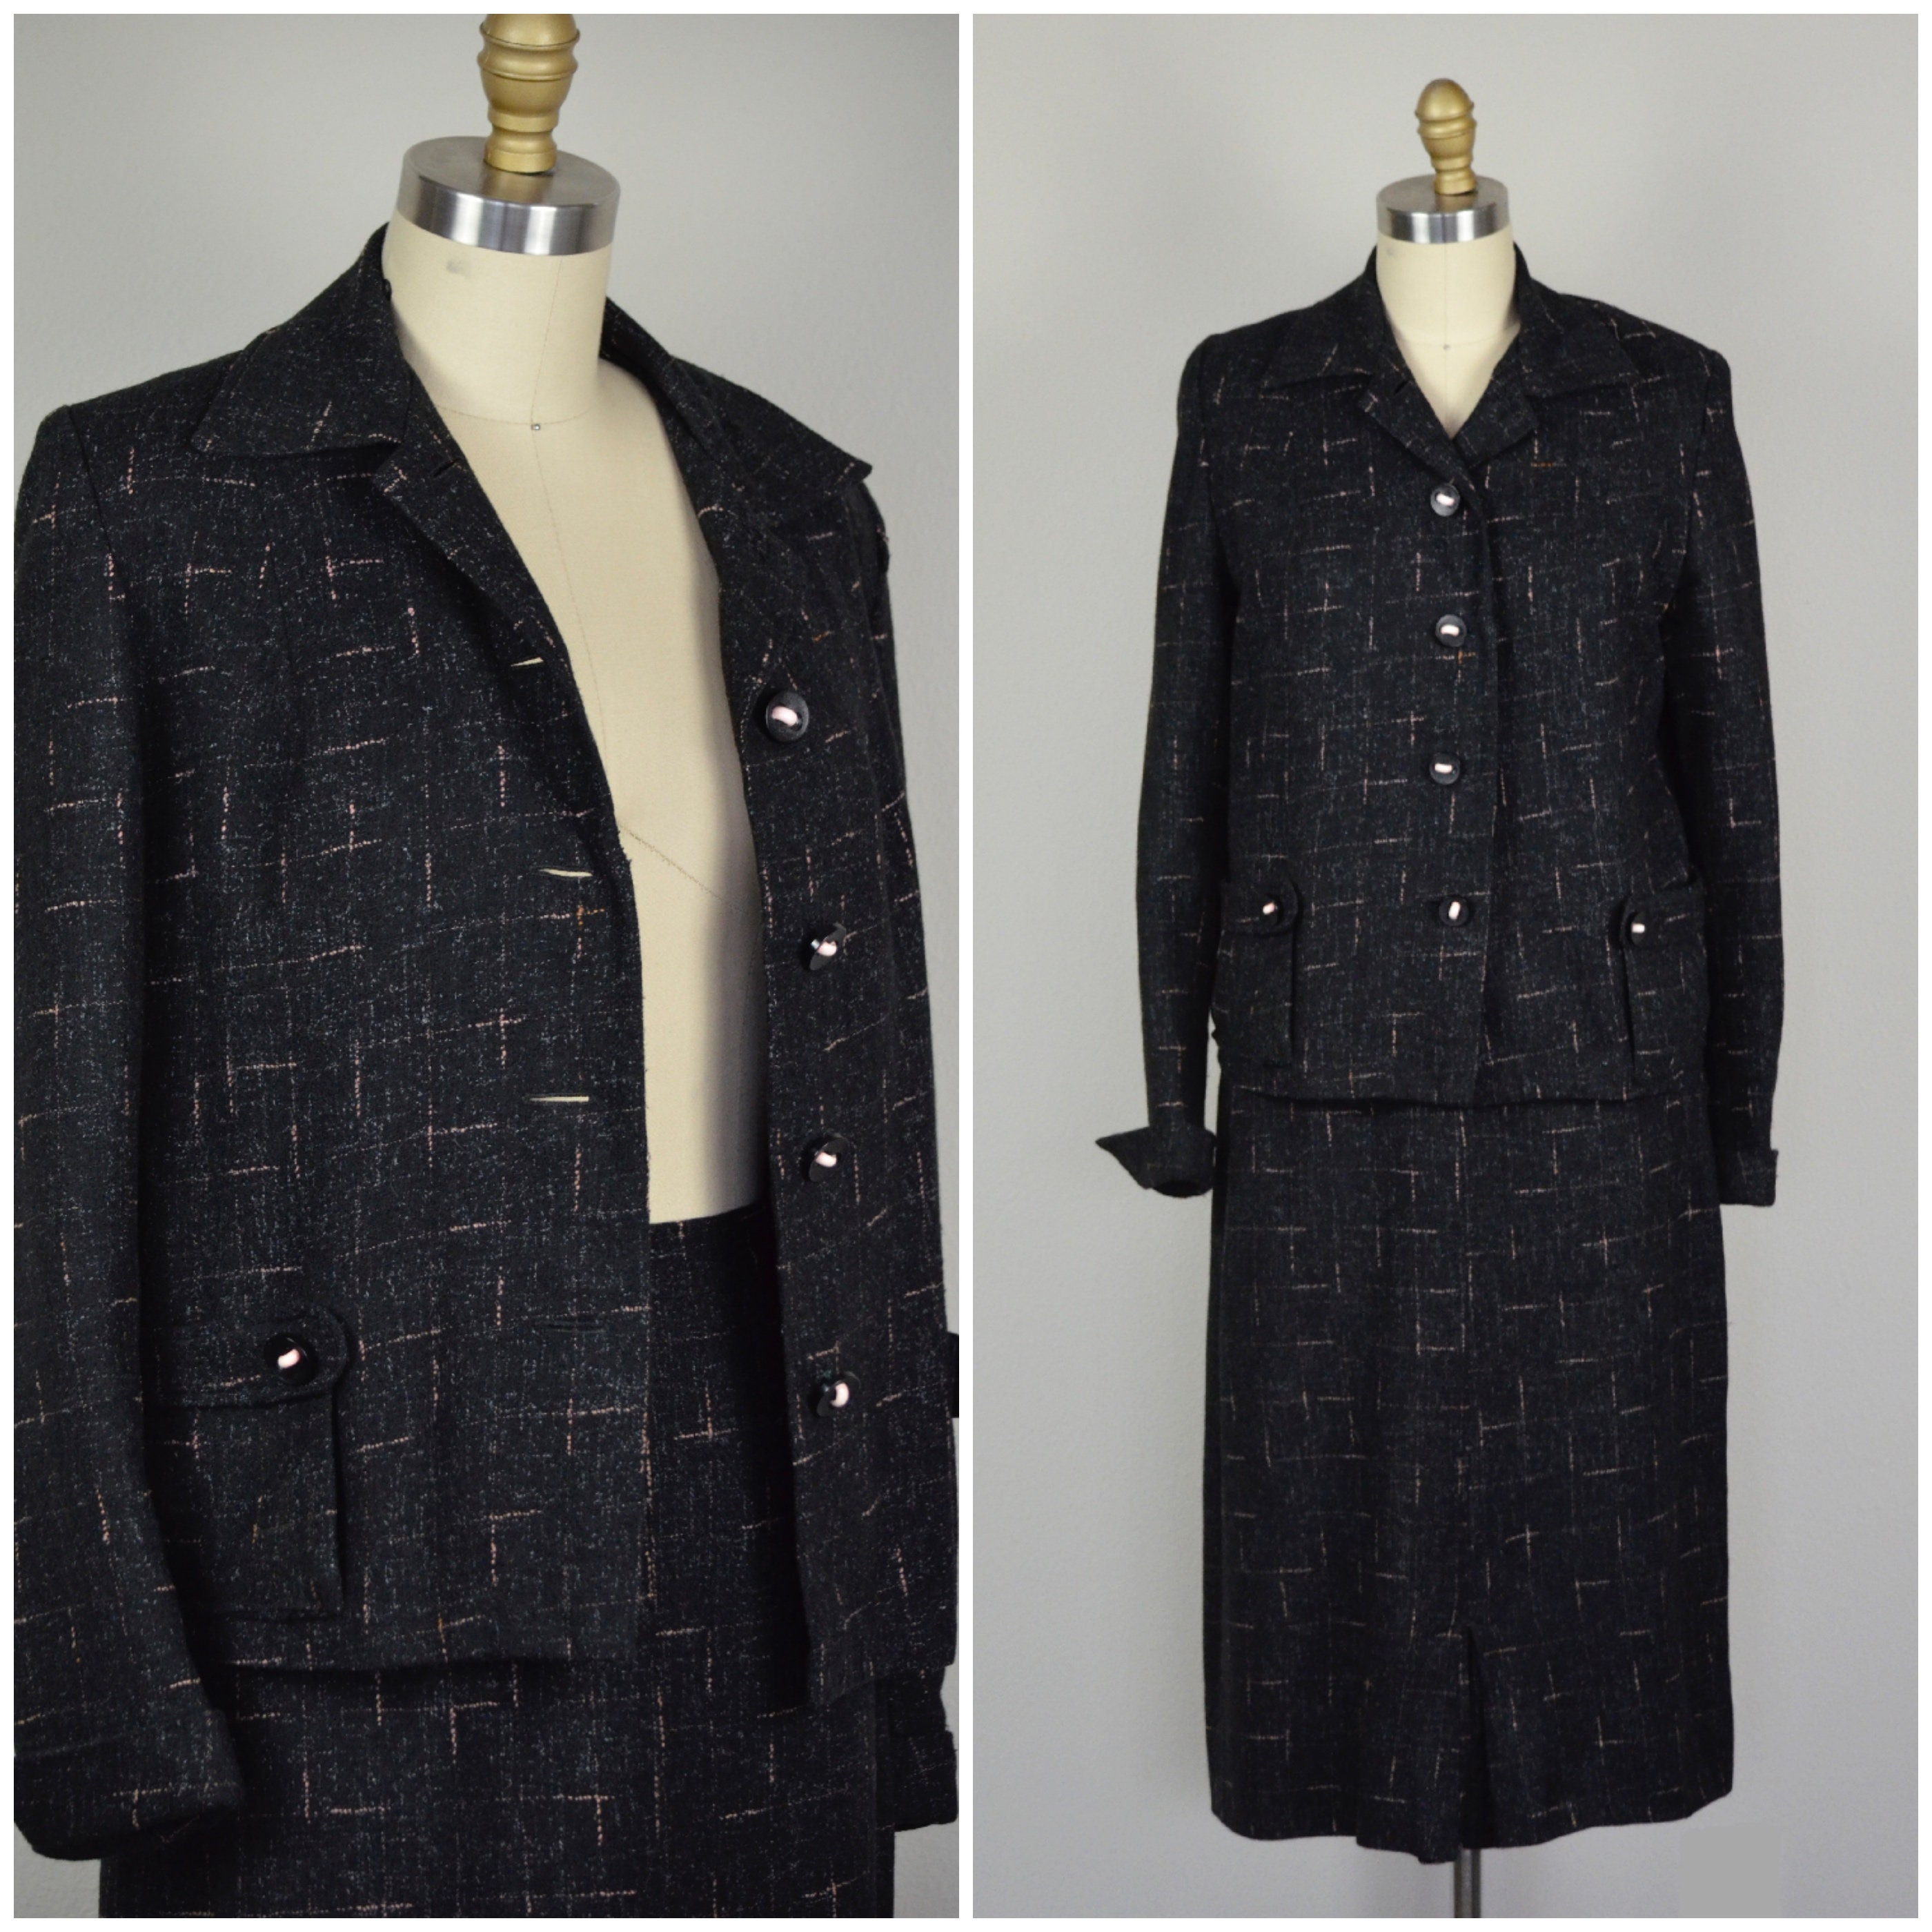 1950s Mens Suits & Sport Coats | 50s Suits & Blazers 1950S Suit  Unique 50S Rockabilly Made From Mens Rock  Roll Suiting - Size Small $20.00 AT vintagedancer.com